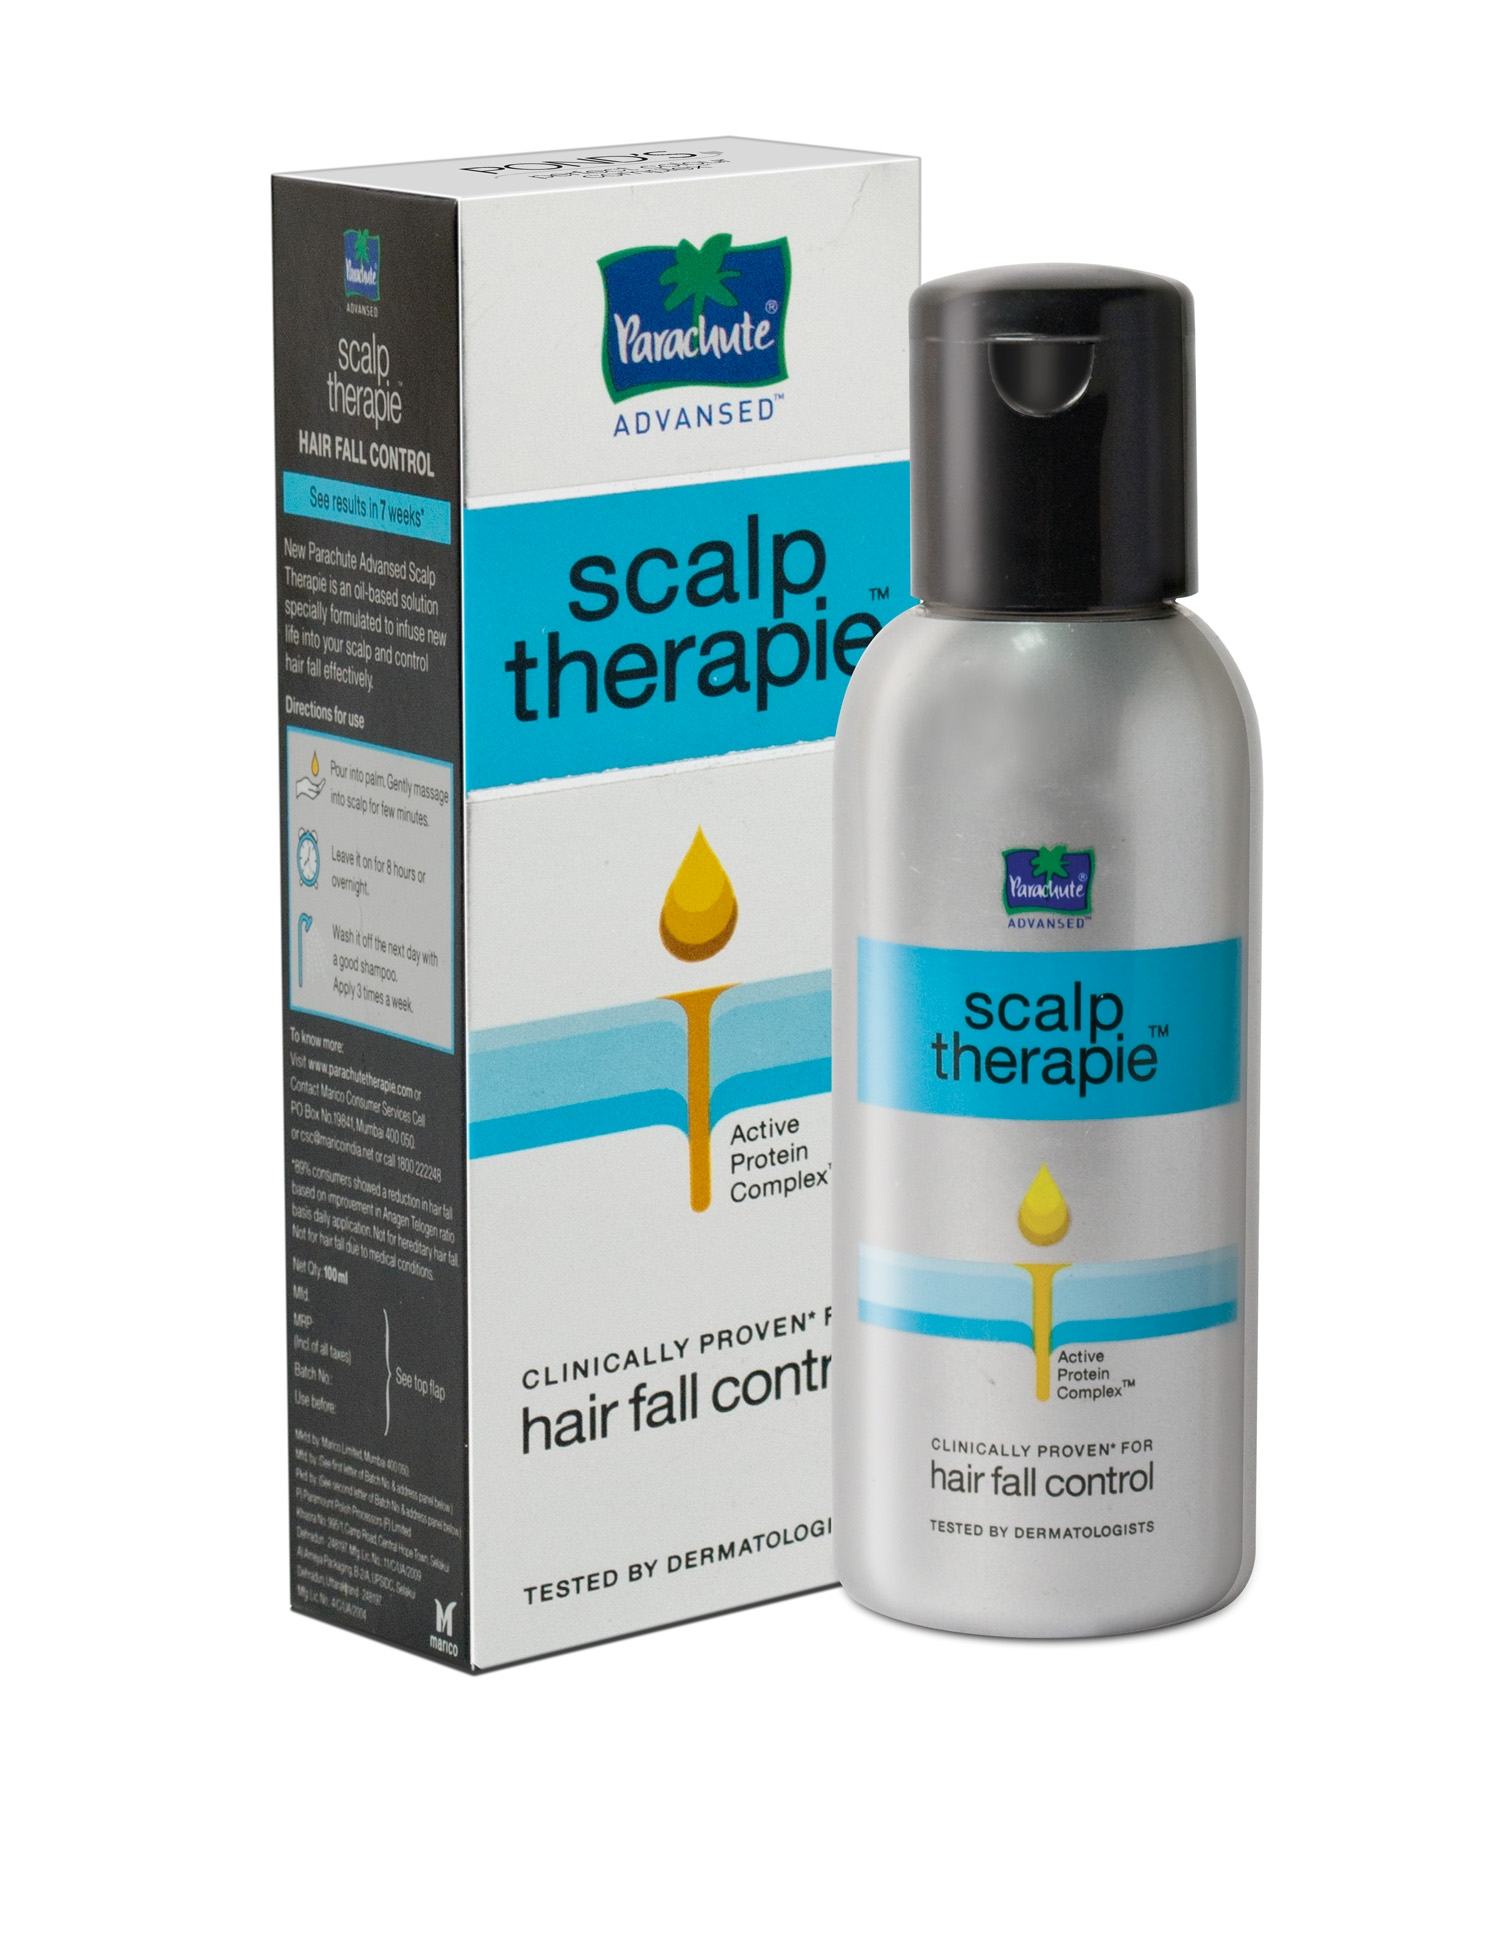 Parachute Advansed Scalp Therapie Hair Fall Control Oil